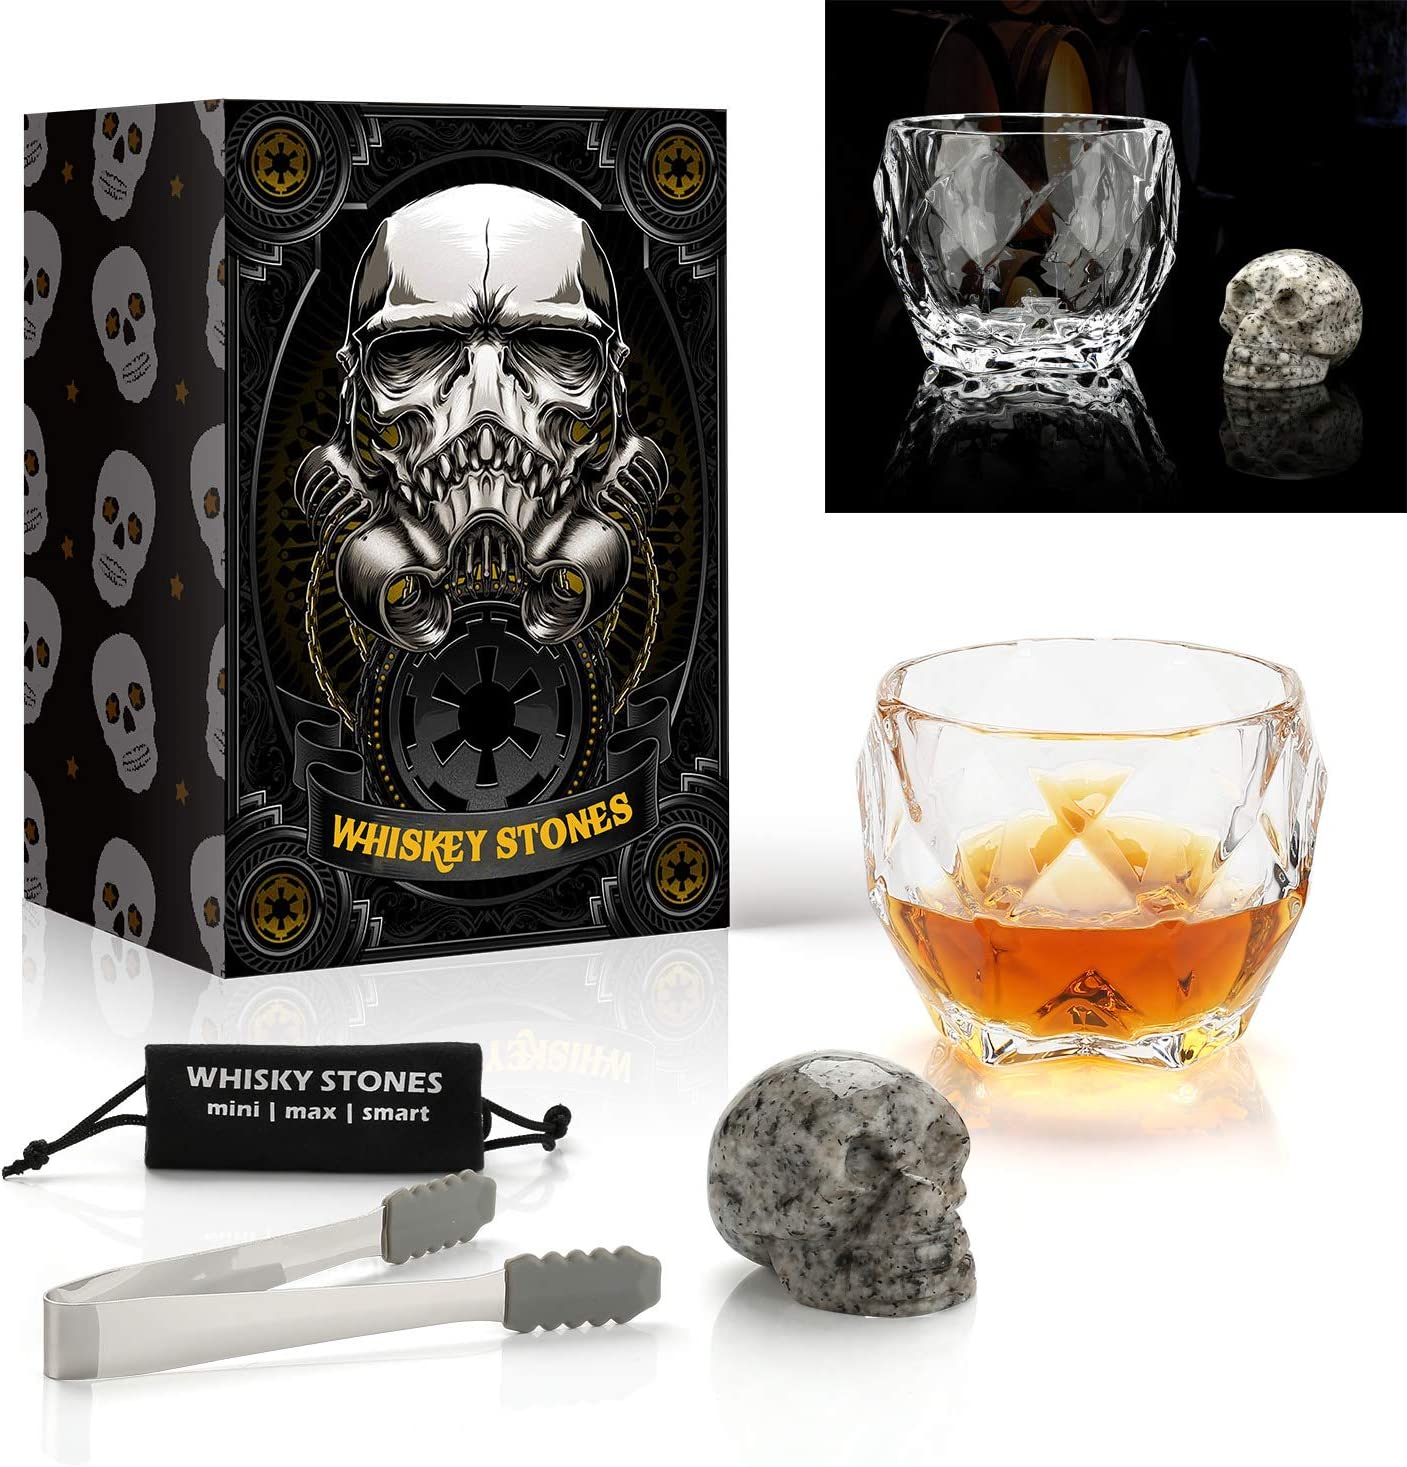 Amazon Com Skull Whiskey Stone And Glass Gift Set Octagon Luxury Glass 550 Ml Reusable Hand Carved Skull Bone Chill Rocks 100 Natural Pure Granite Ideal Novelty Gifts For Men And Whisky